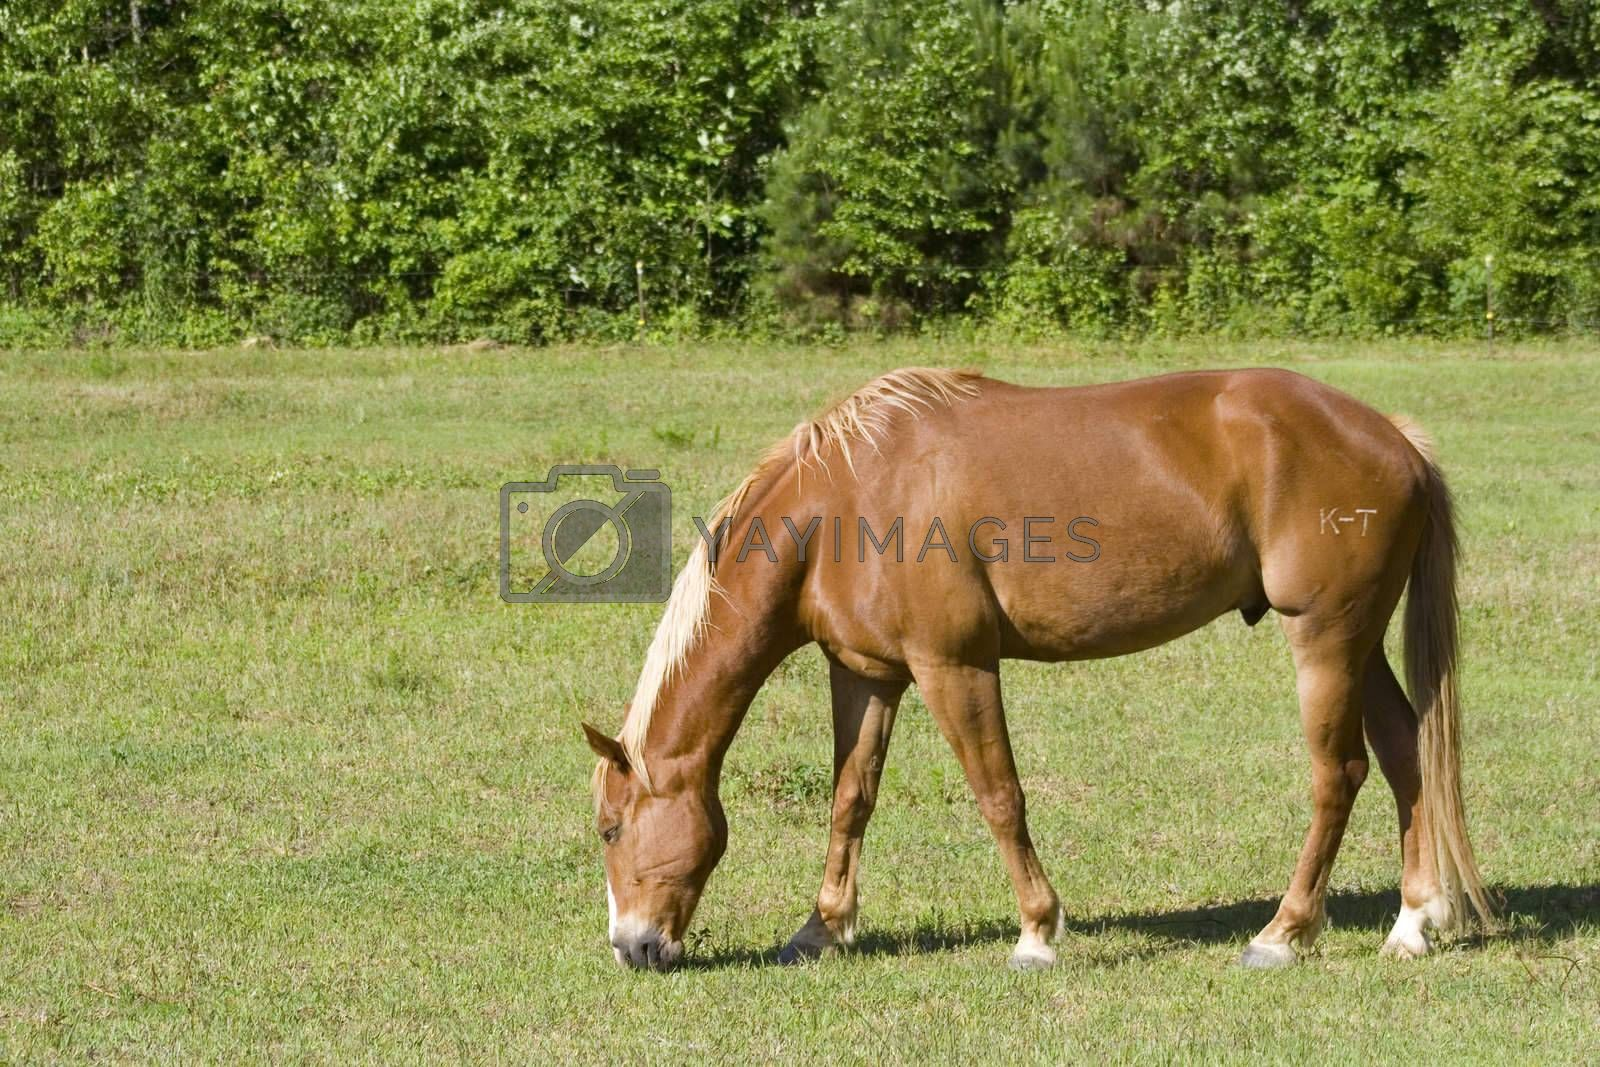 A wide shot of a horse grazing in a field.